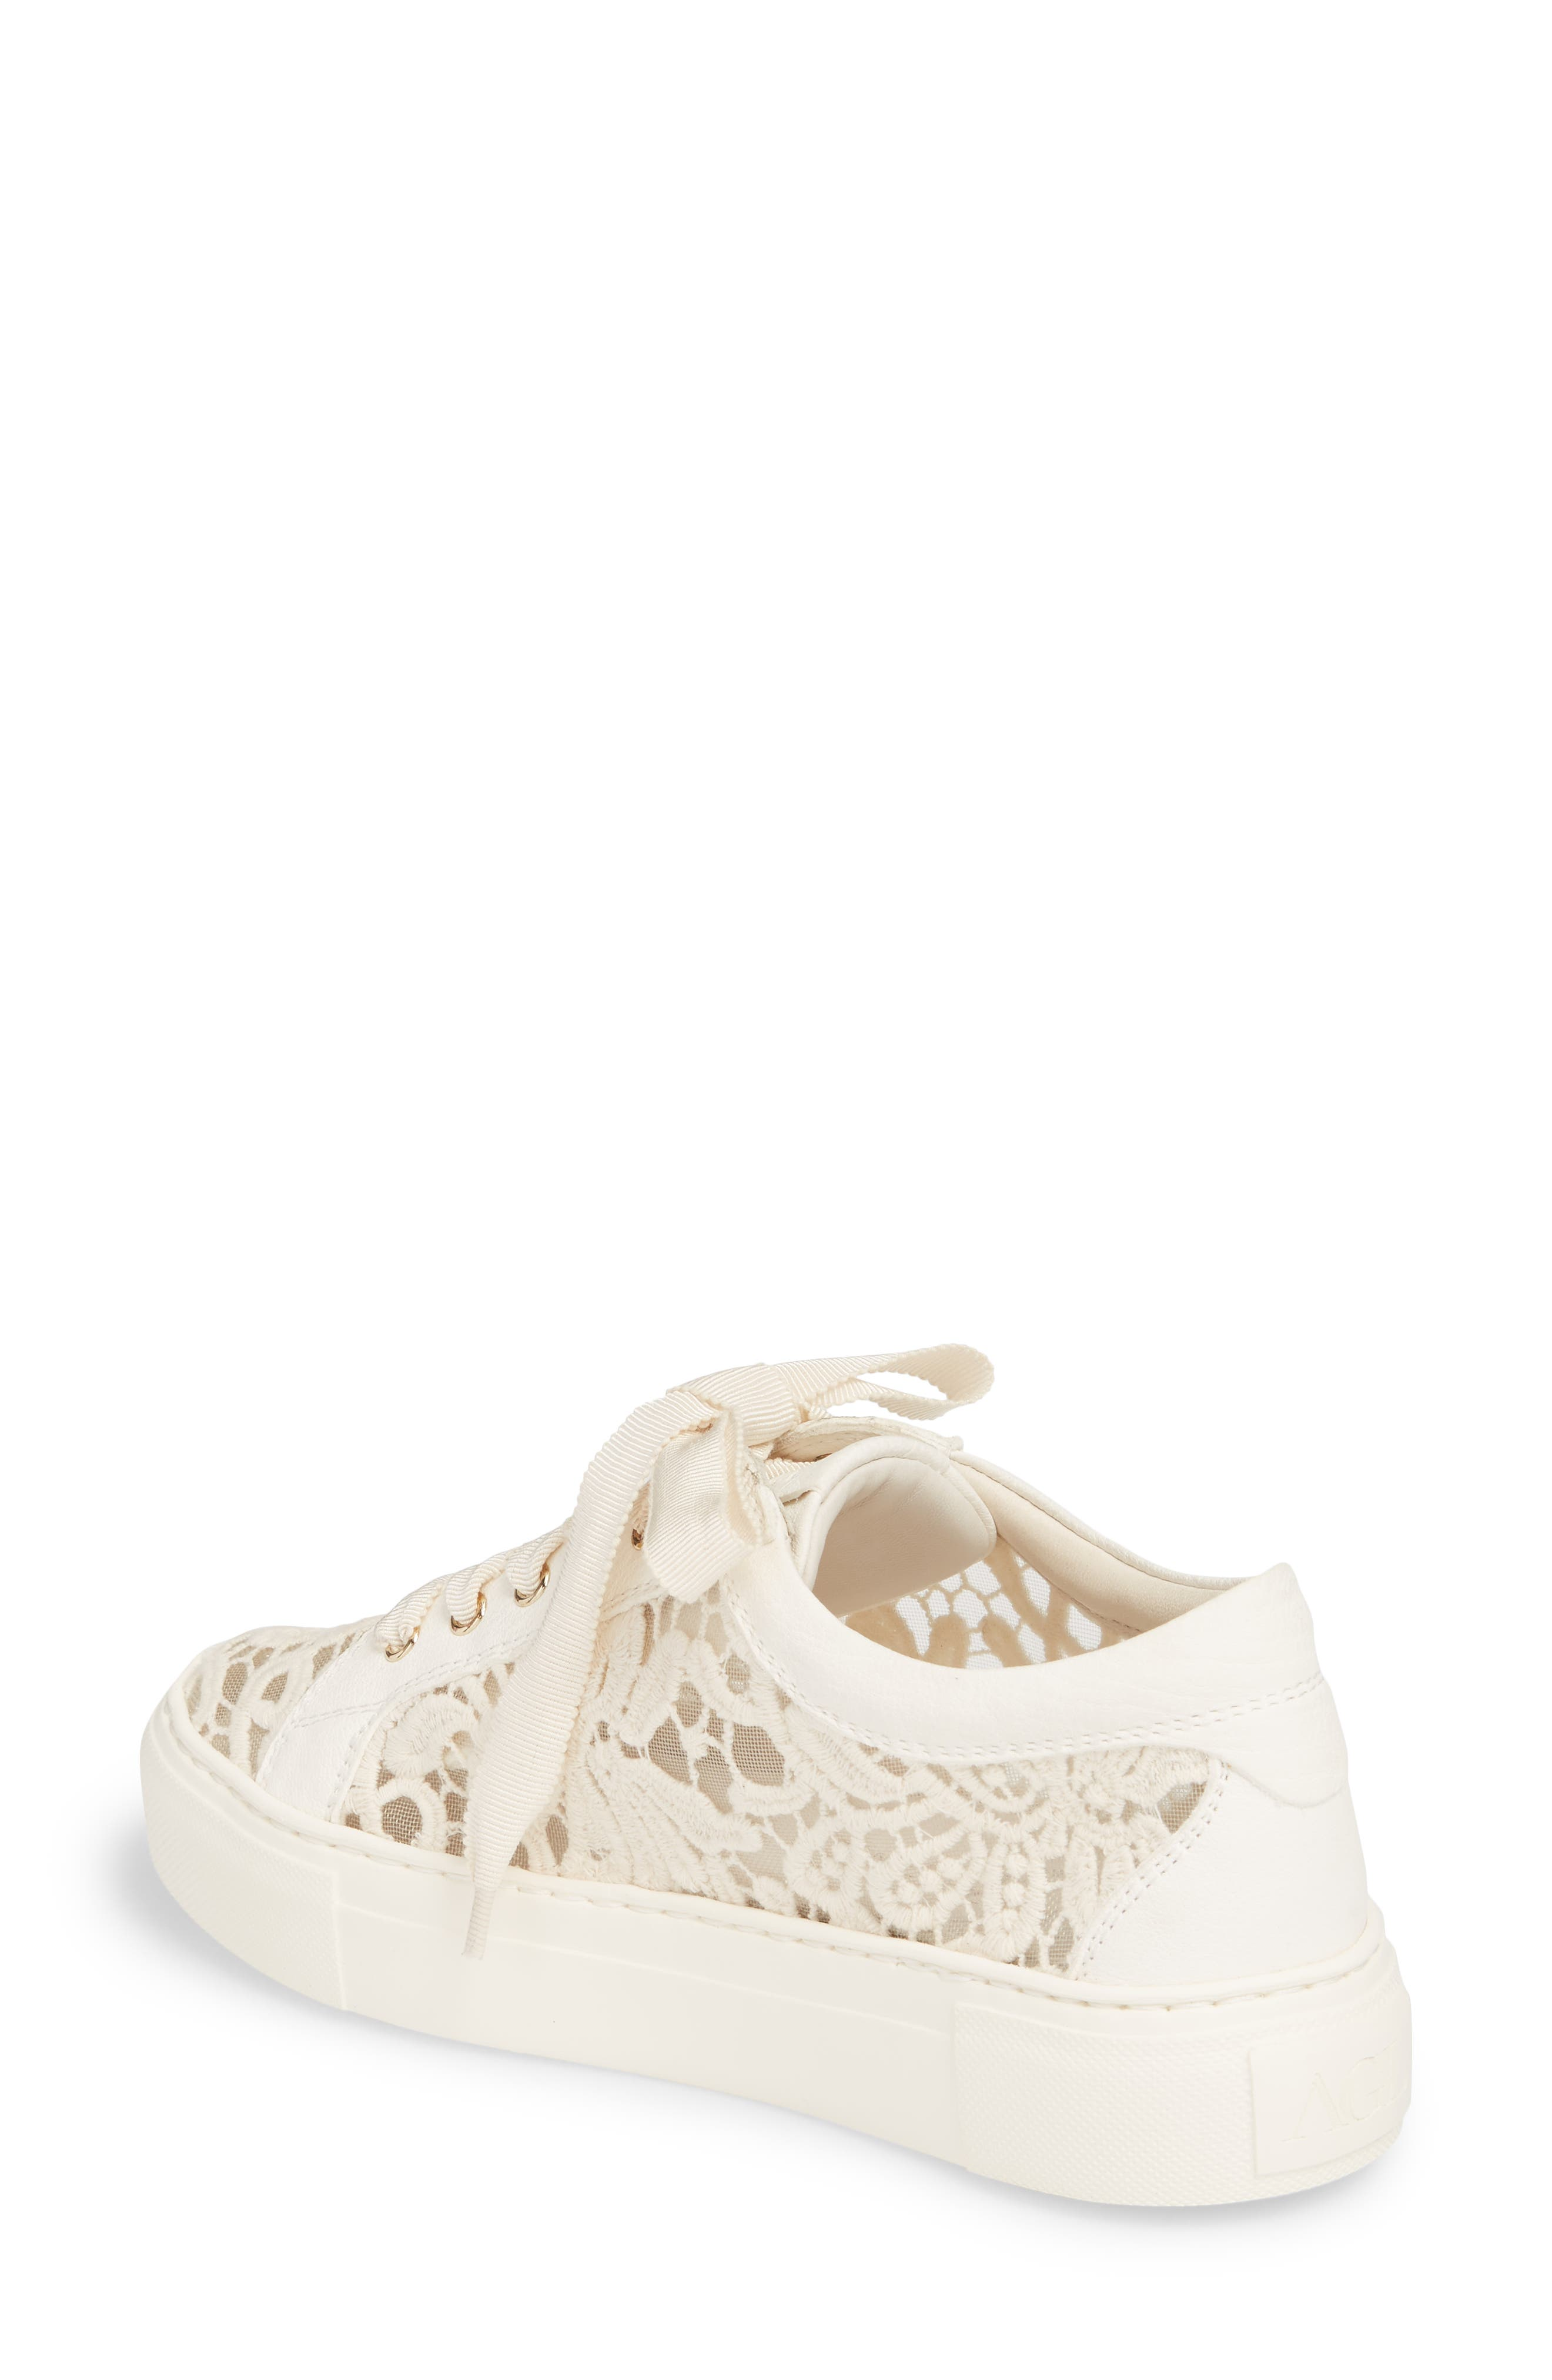 Embroidered Lace Sneaker,                             Alternate thumbnail 2, color,                             OFF WHITE LEATHER